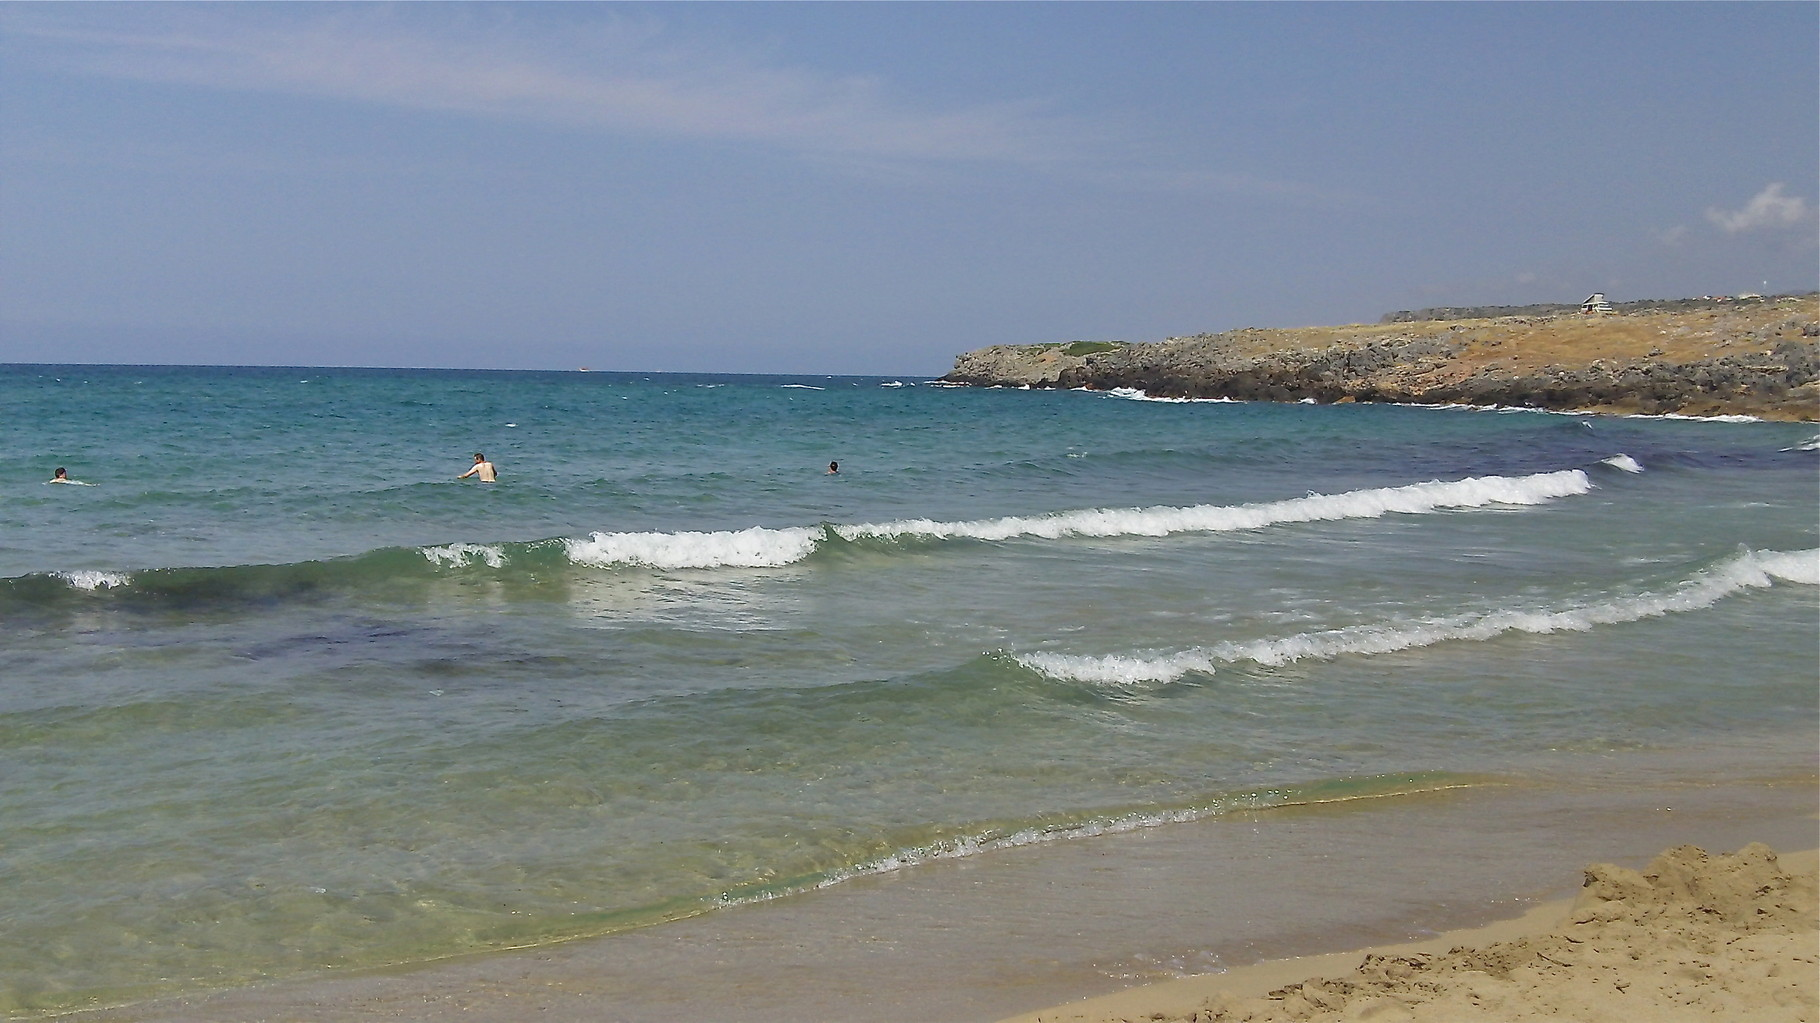 beach near Malia, John in water at left of picture